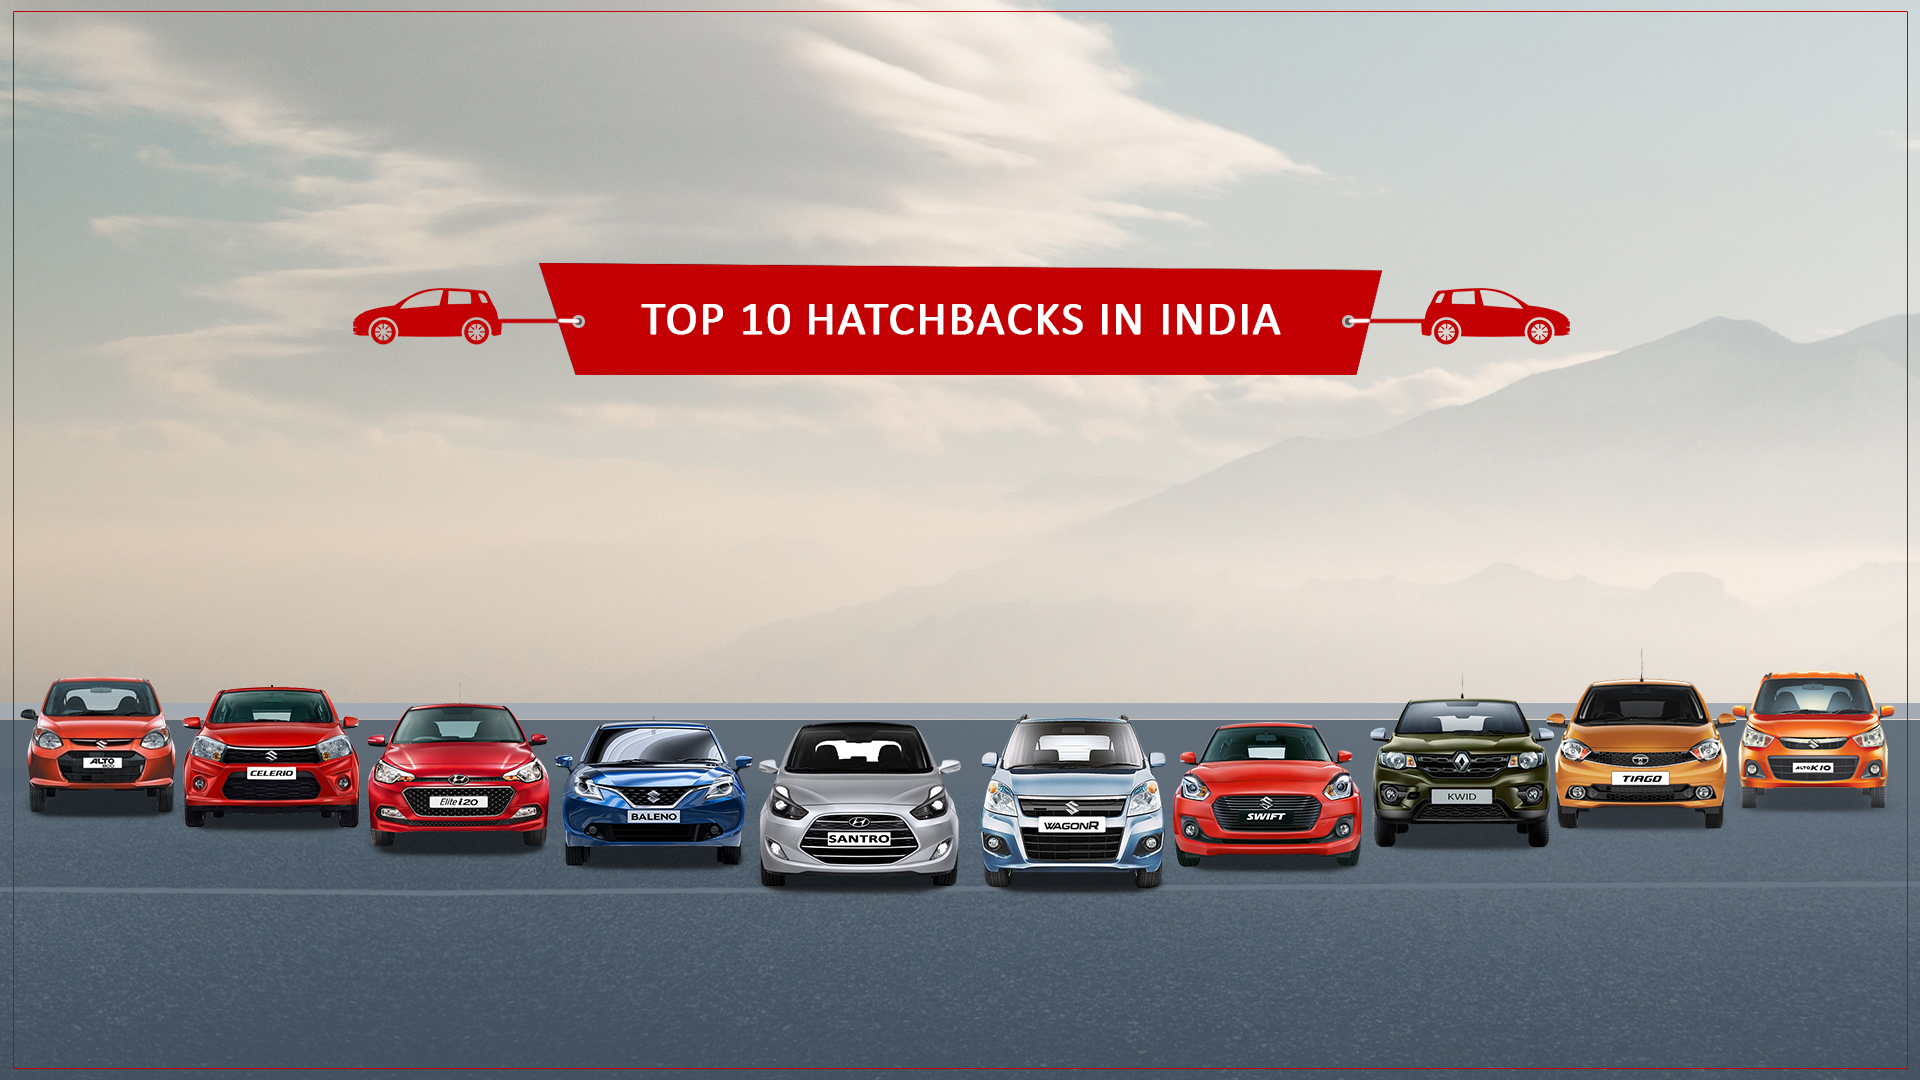 Top 10 hatchback cars in India (Updated 2018)